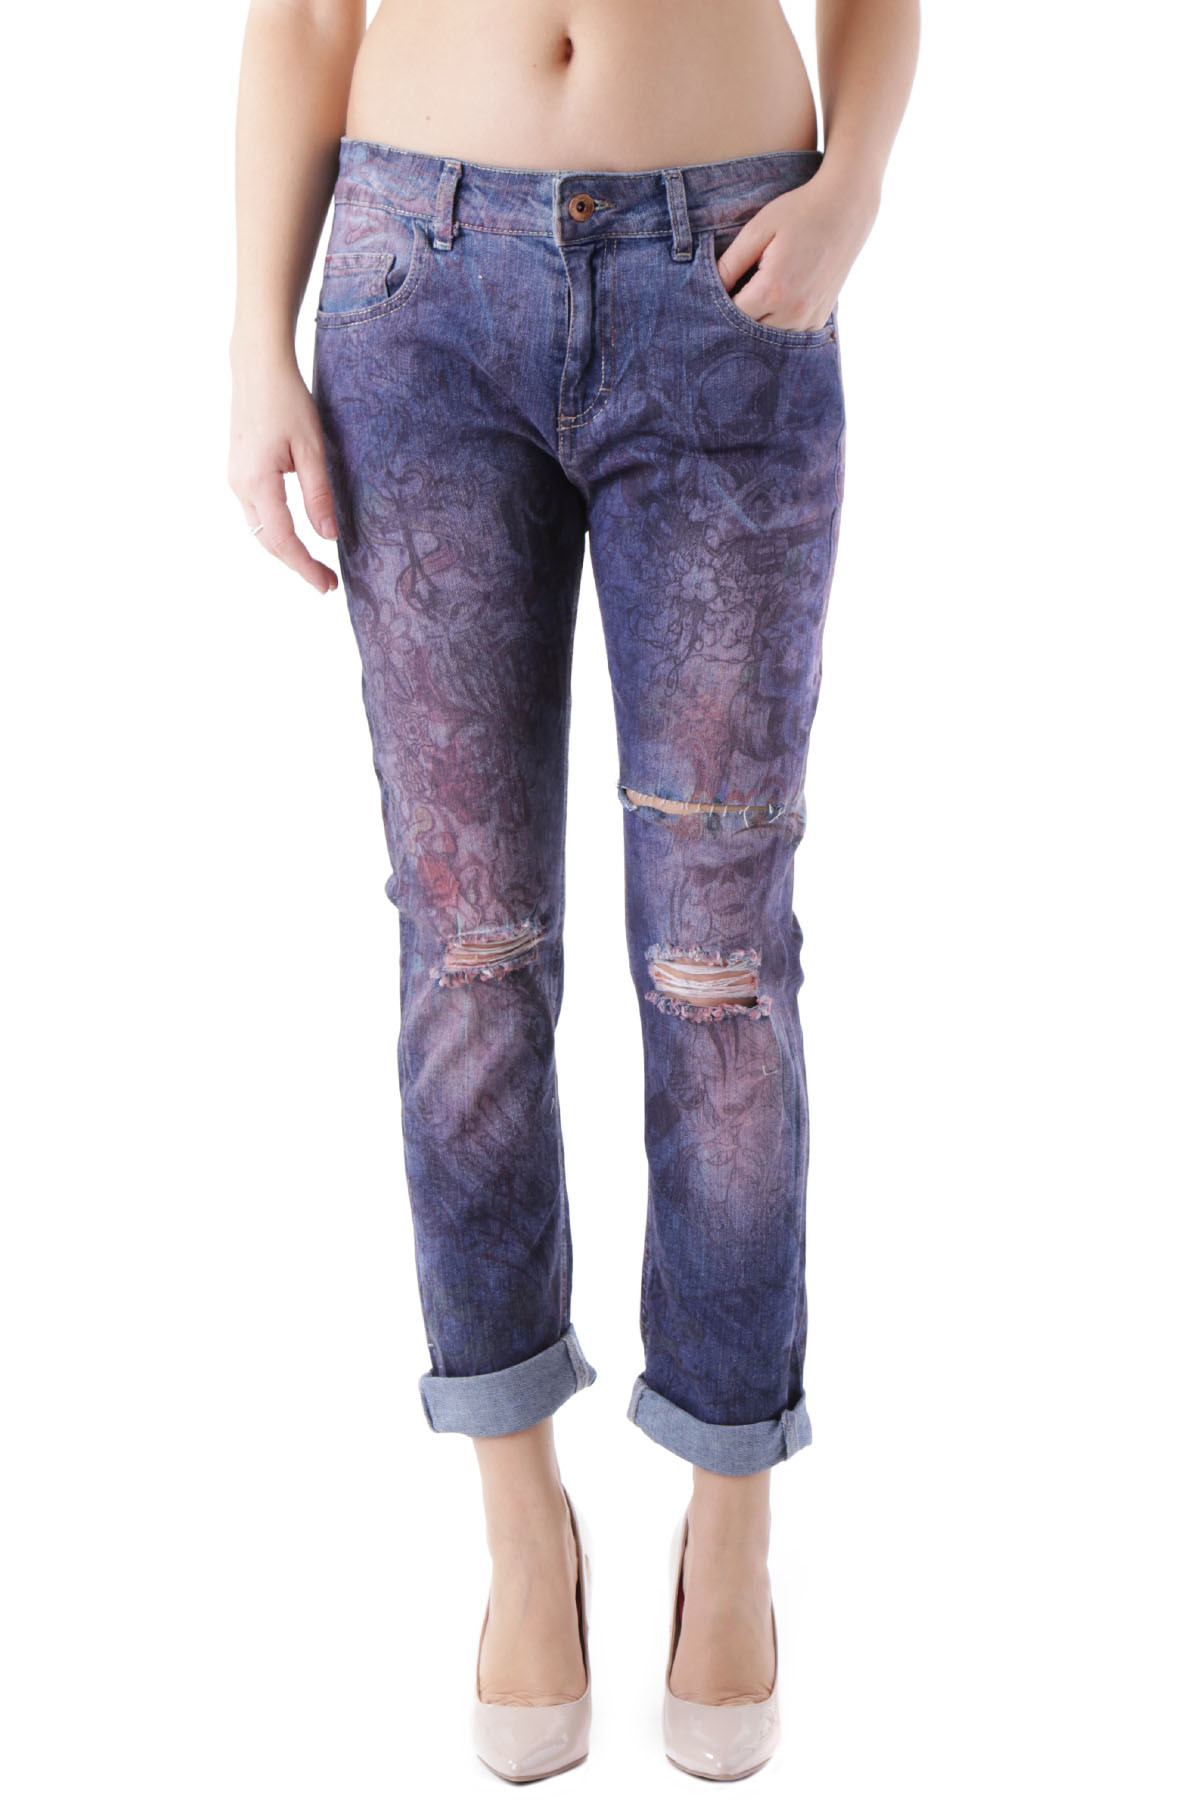 Marchio: 525; Genere: Donna; Tipologia: Jeans;